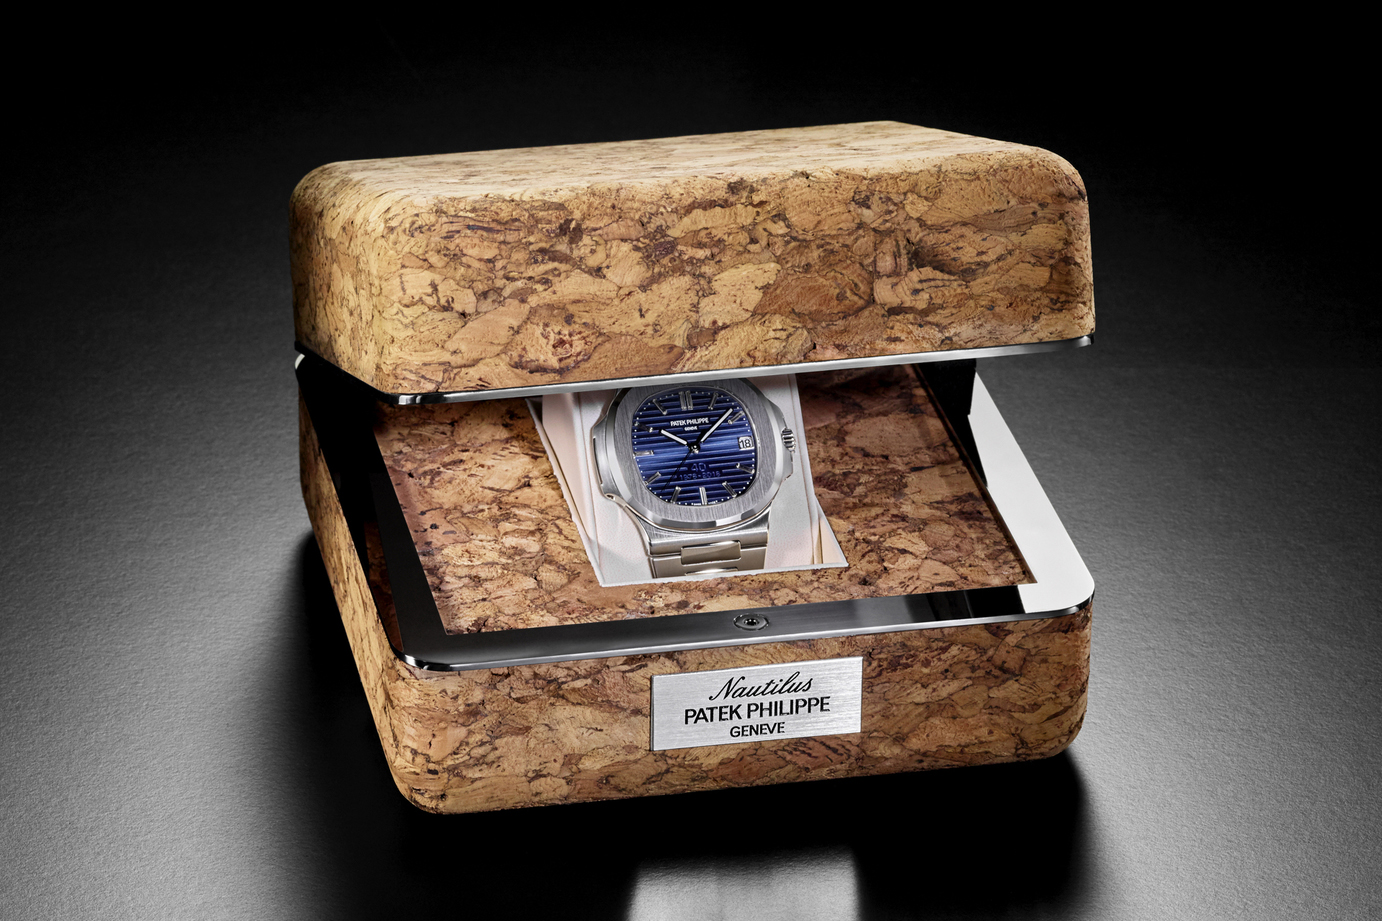 Patek Philippe Celebrates the 40th Anniversary of the Nautilus